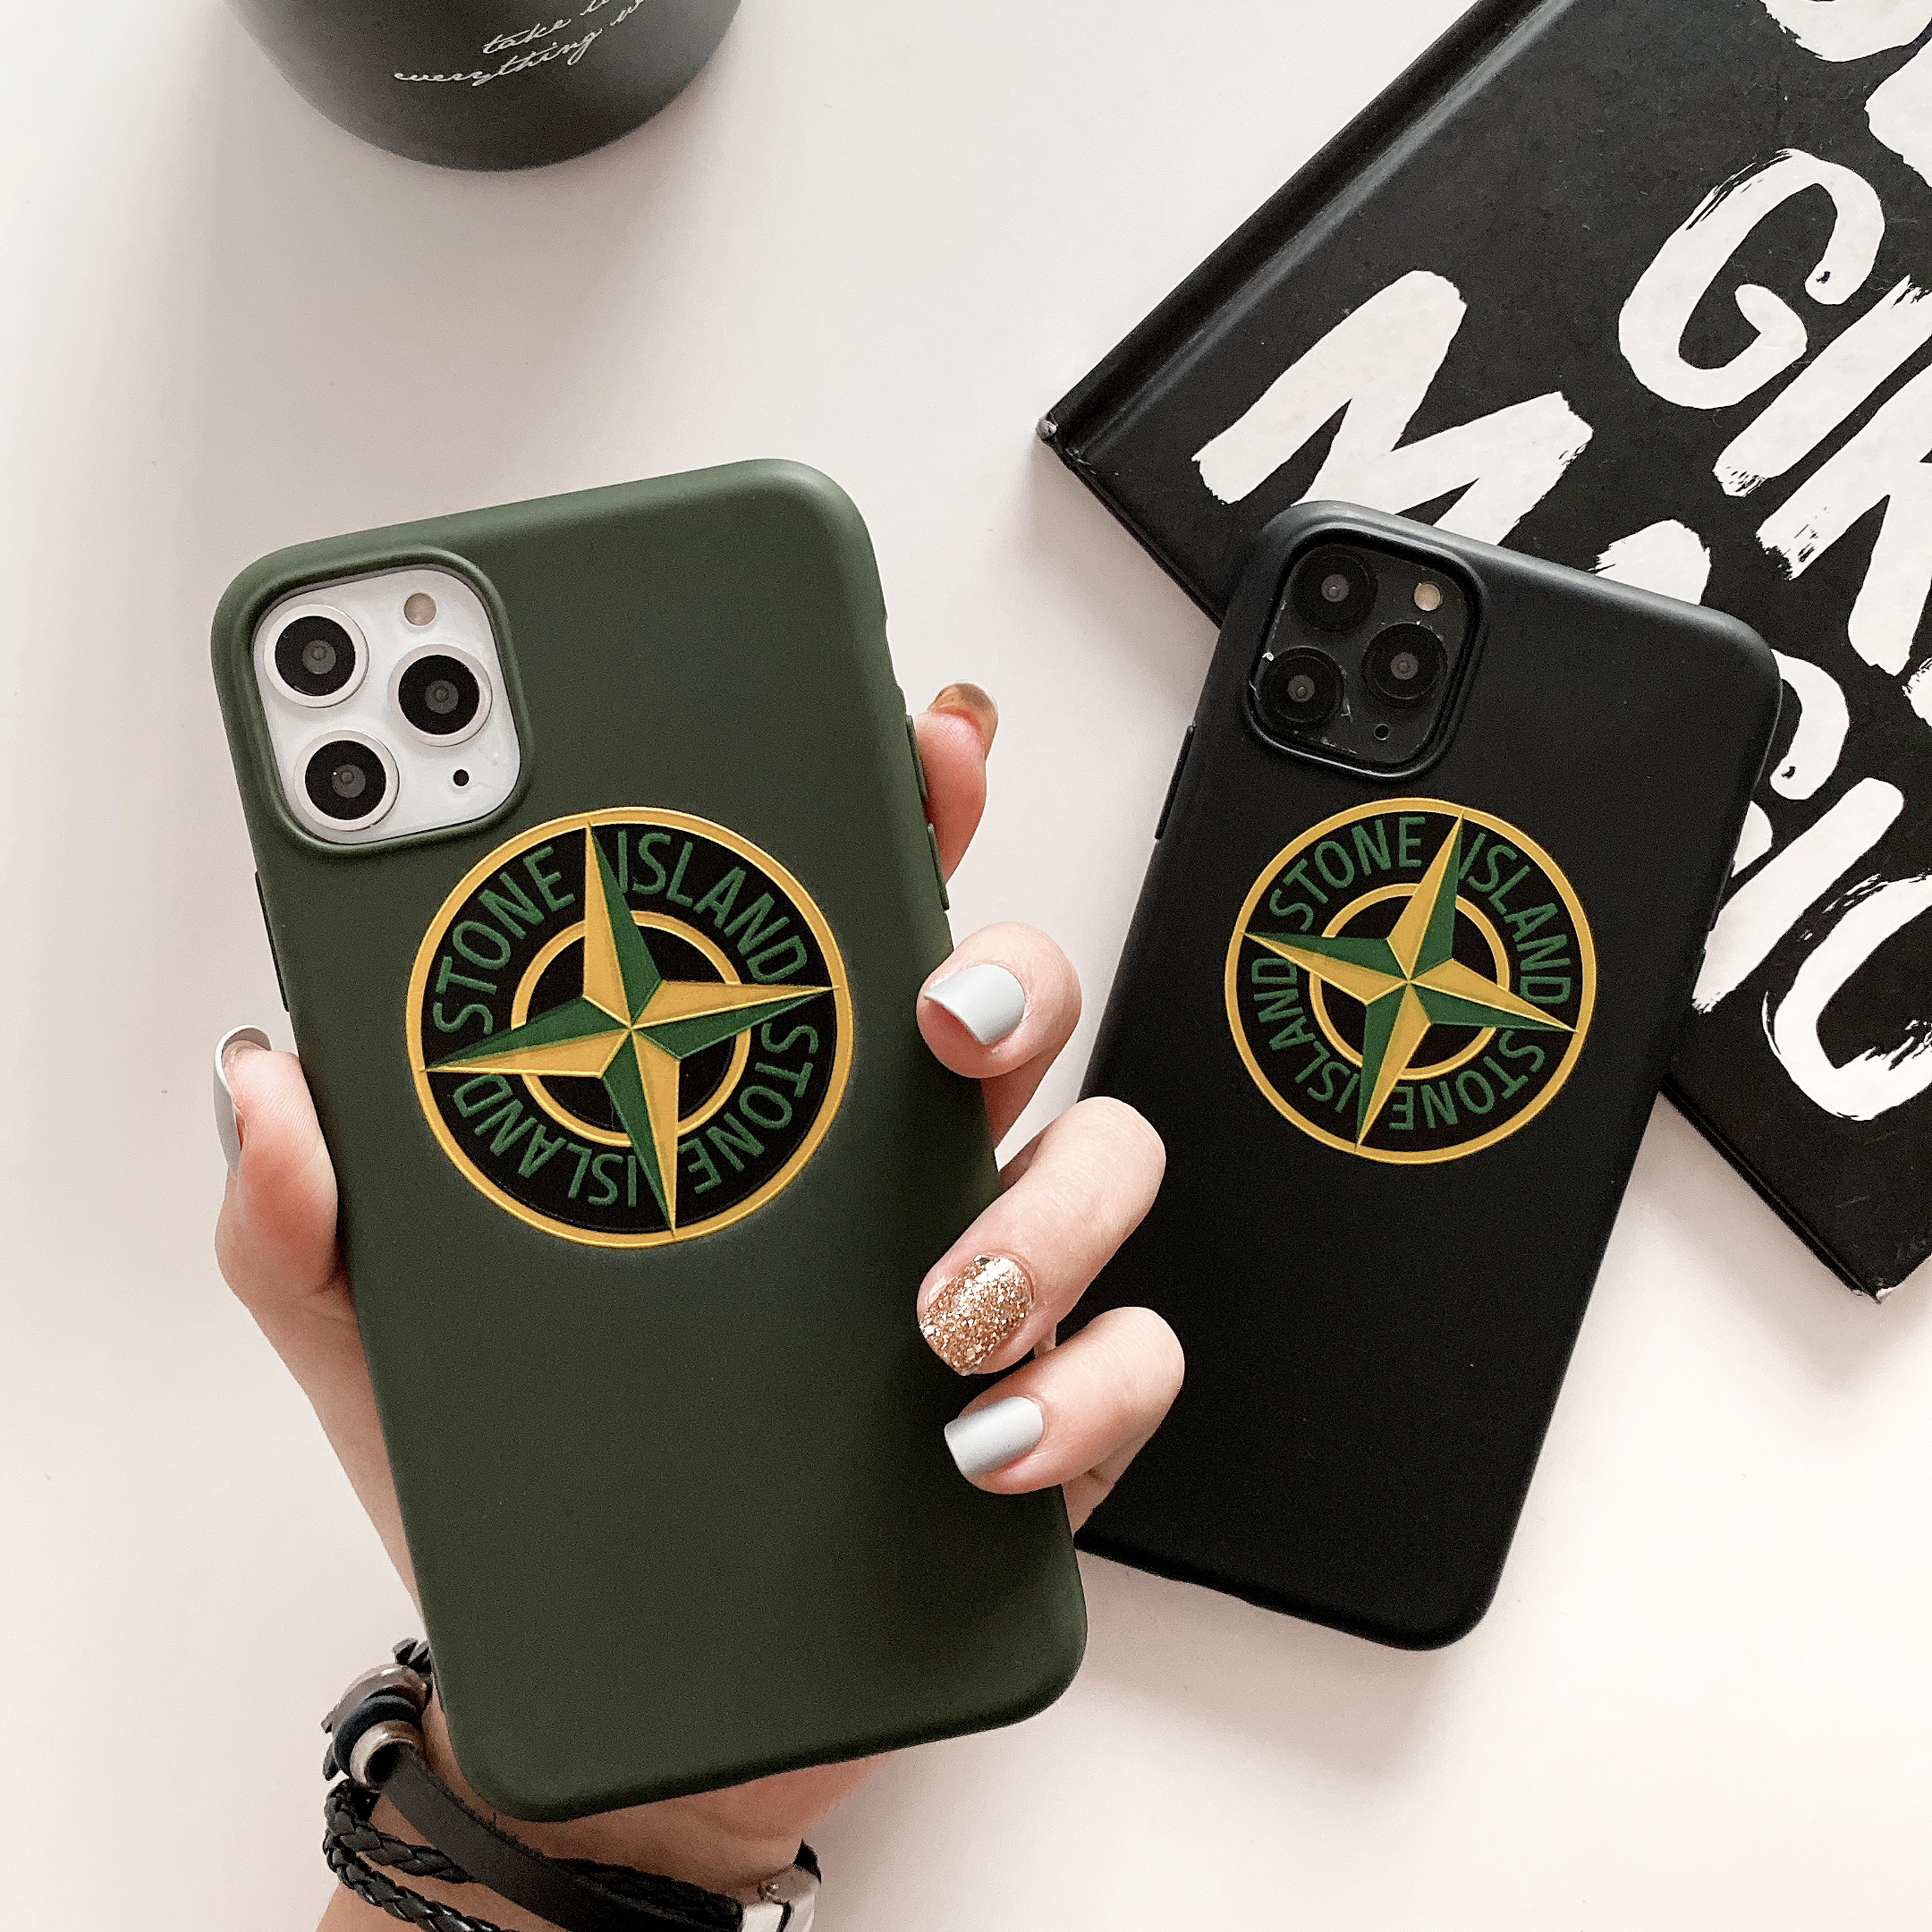 Cute Fashion Minimalist Popular Brand Stone Medal Logo Silicone Case For Iphone 11 Pro X XR XS MAX 6 7 8 Plus Luxury Phone Cover